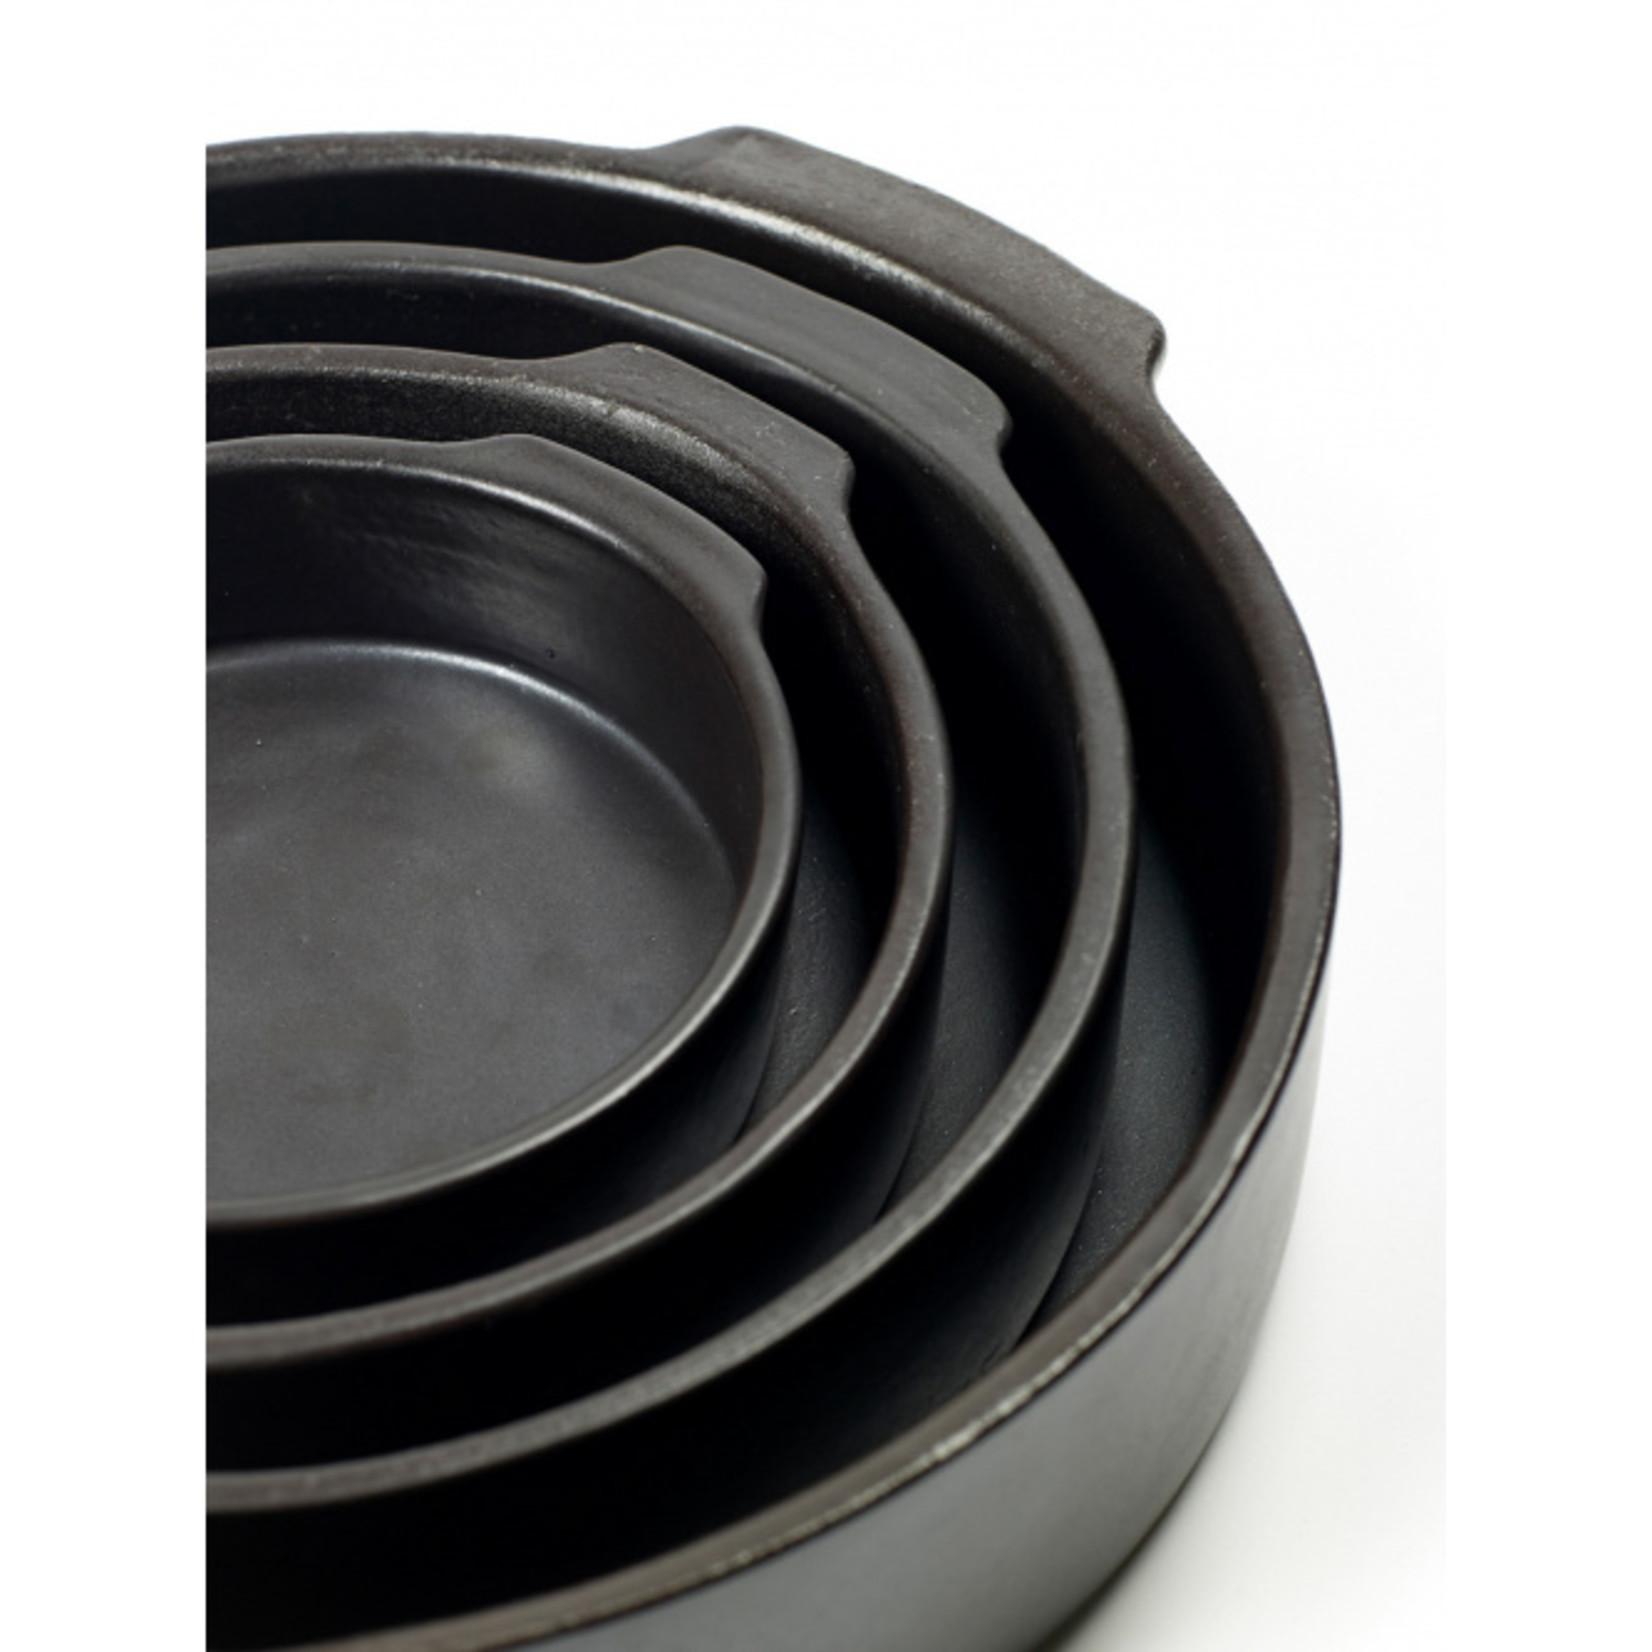 Pascale Naessens collection Pure Ovenschaal zwart rond